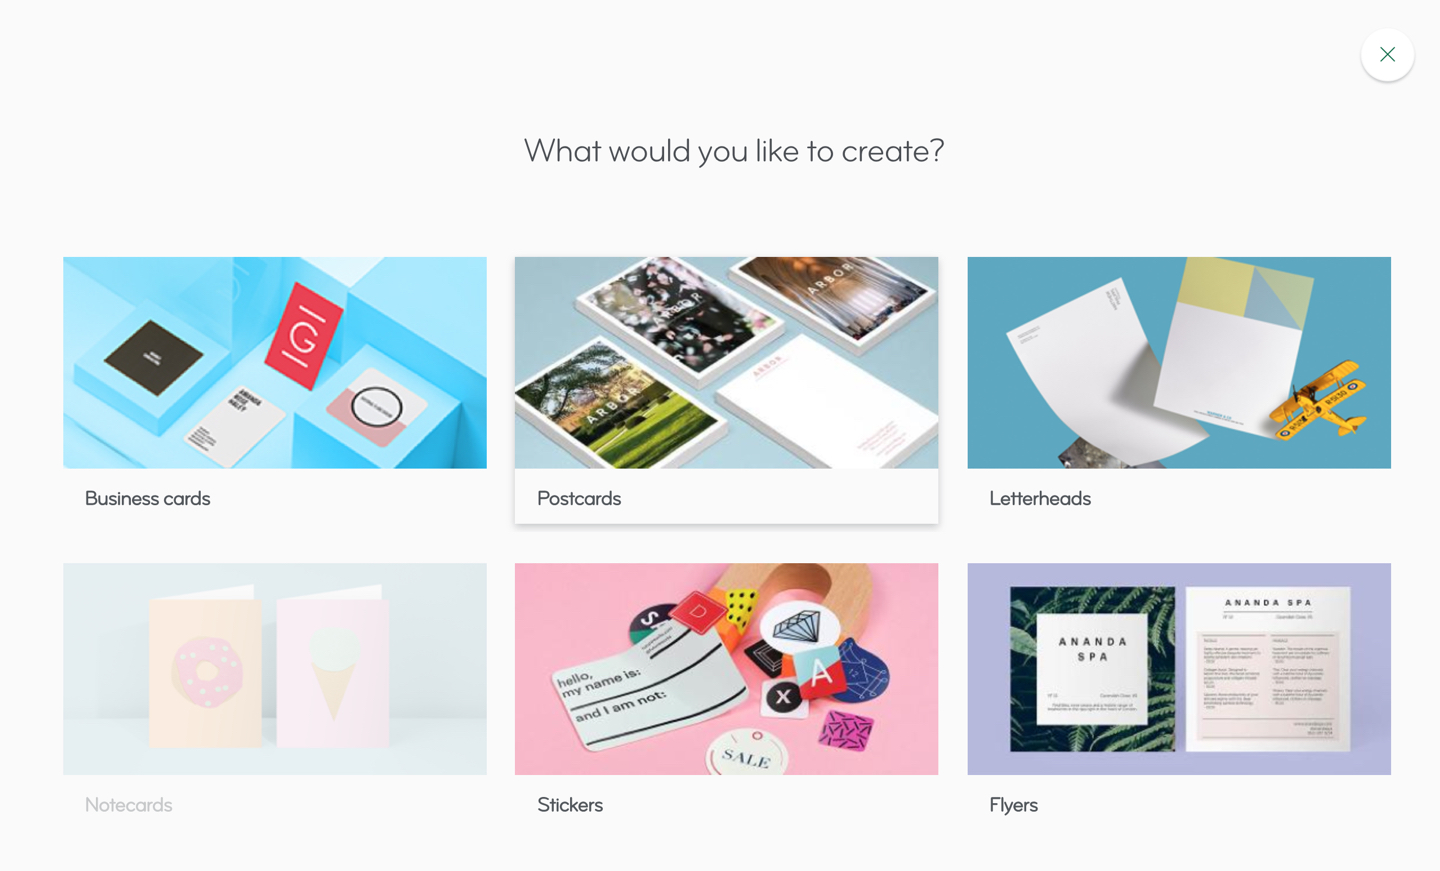 MOO Demo - Customers are guided through an intuitive and easy-to-follow creation process while designing products segmented by type: business cards, postcards, notecards, stickers, letterhead and flyers.